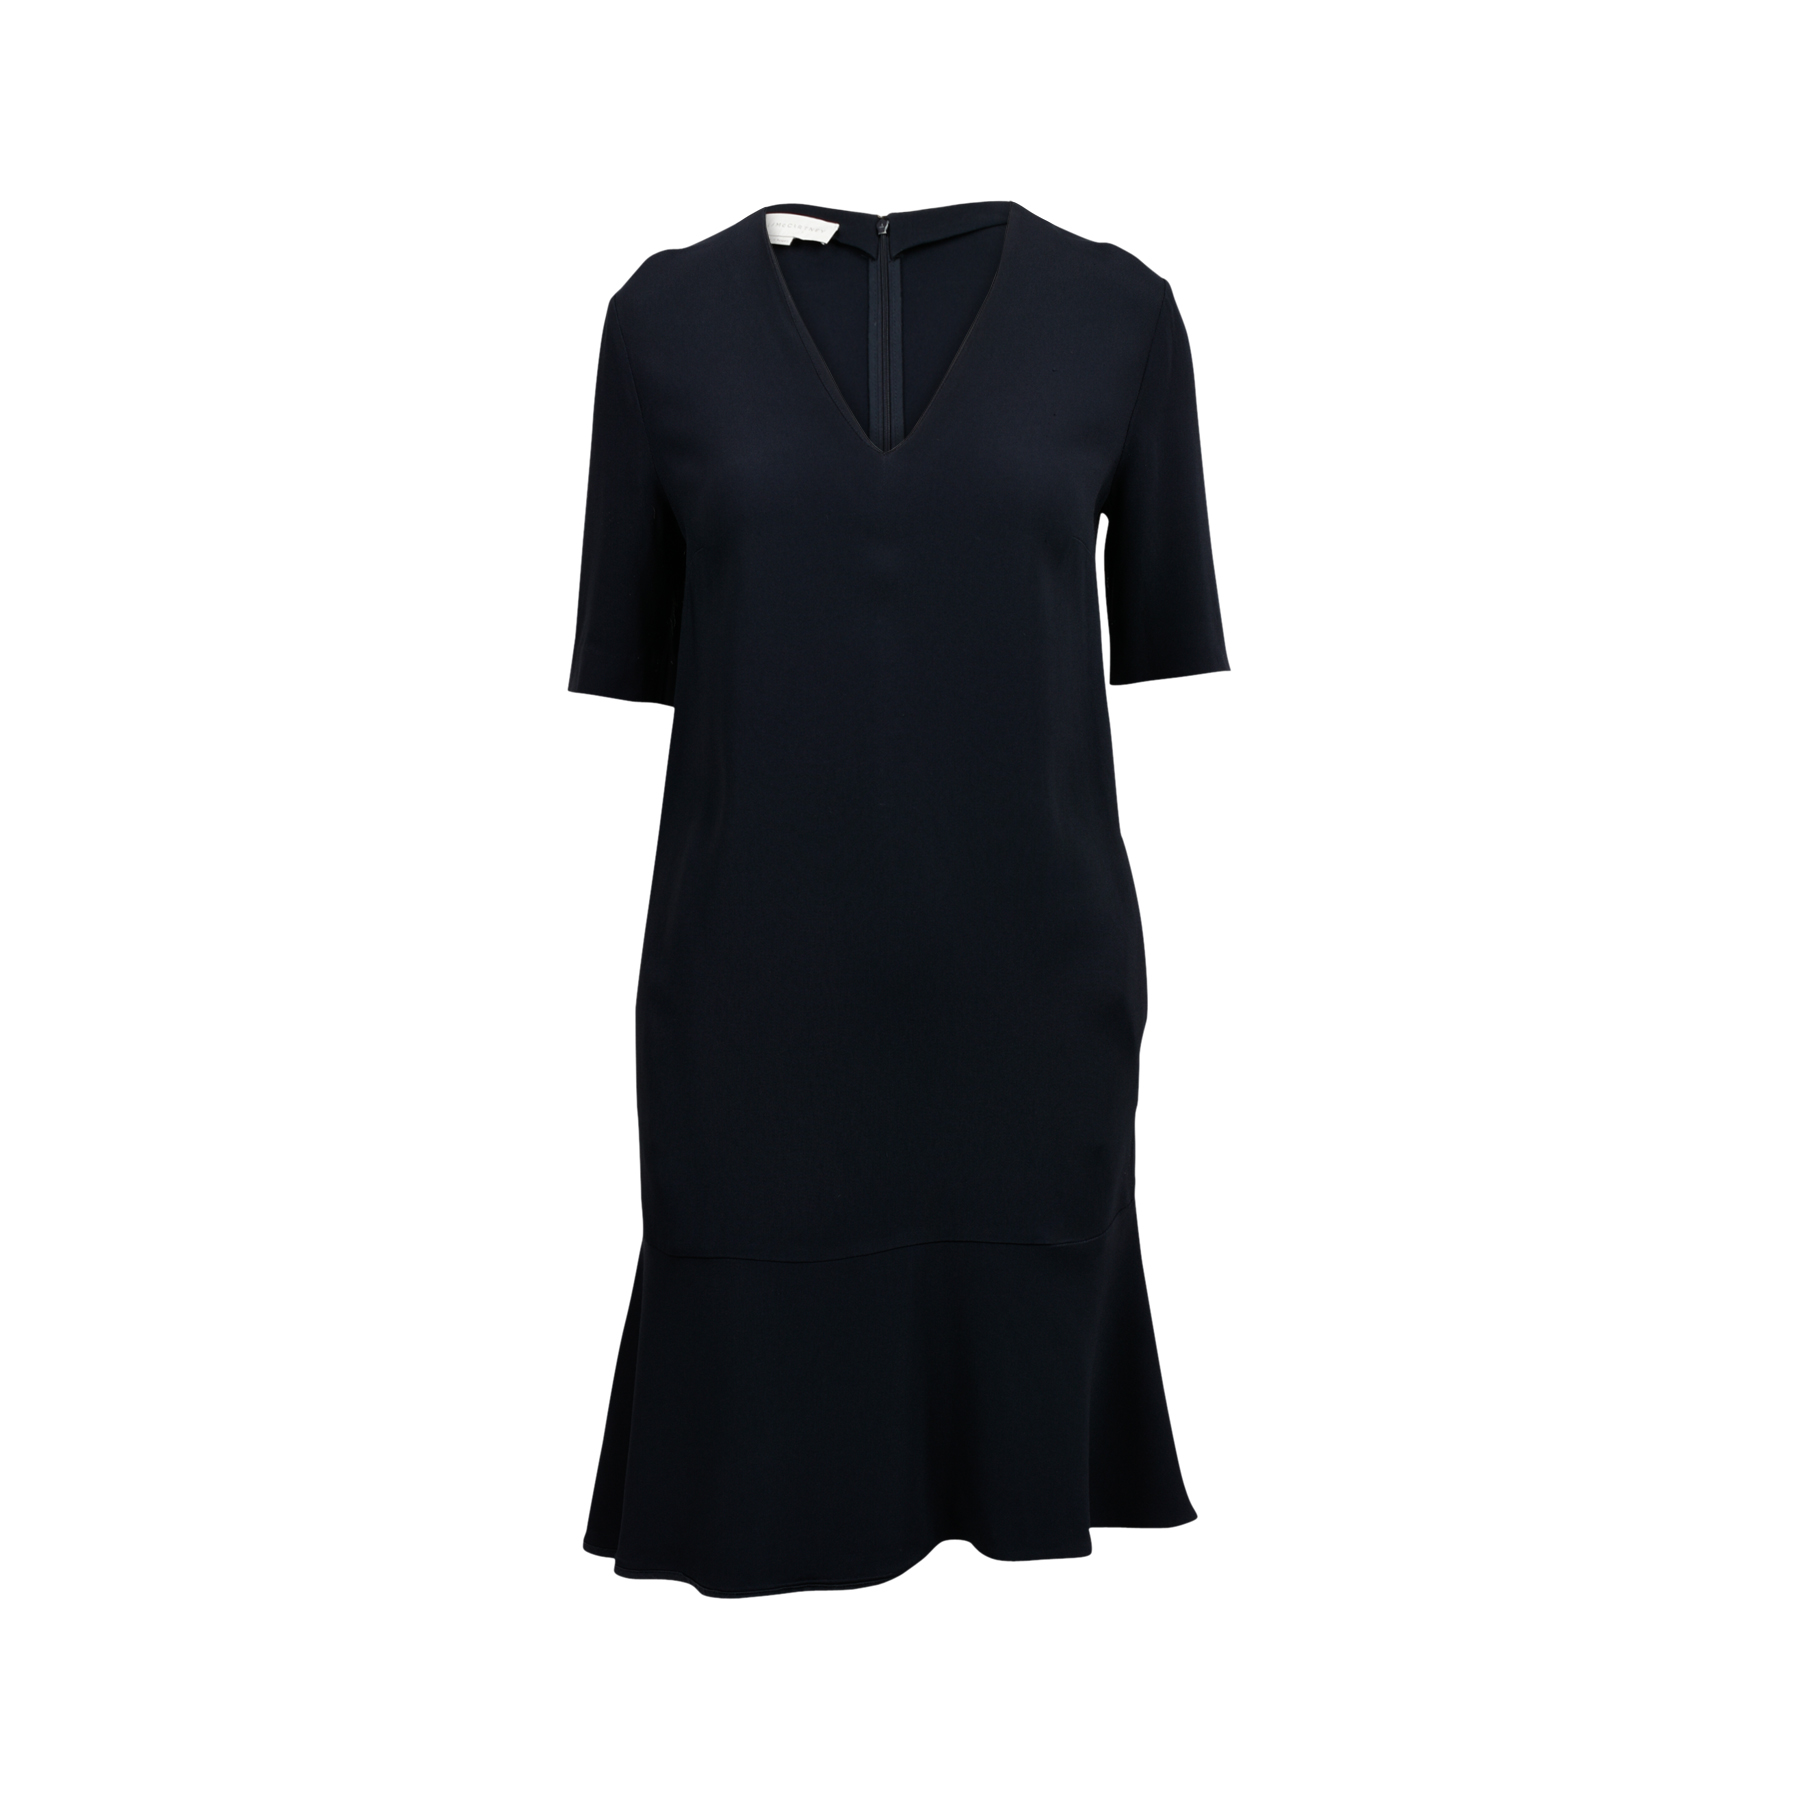 92c80df94d68 Authentic Second Hand Stella McCartney Ruffled Hem Dress (PSS-132-00116) |  THE FIFTH COLLECTION